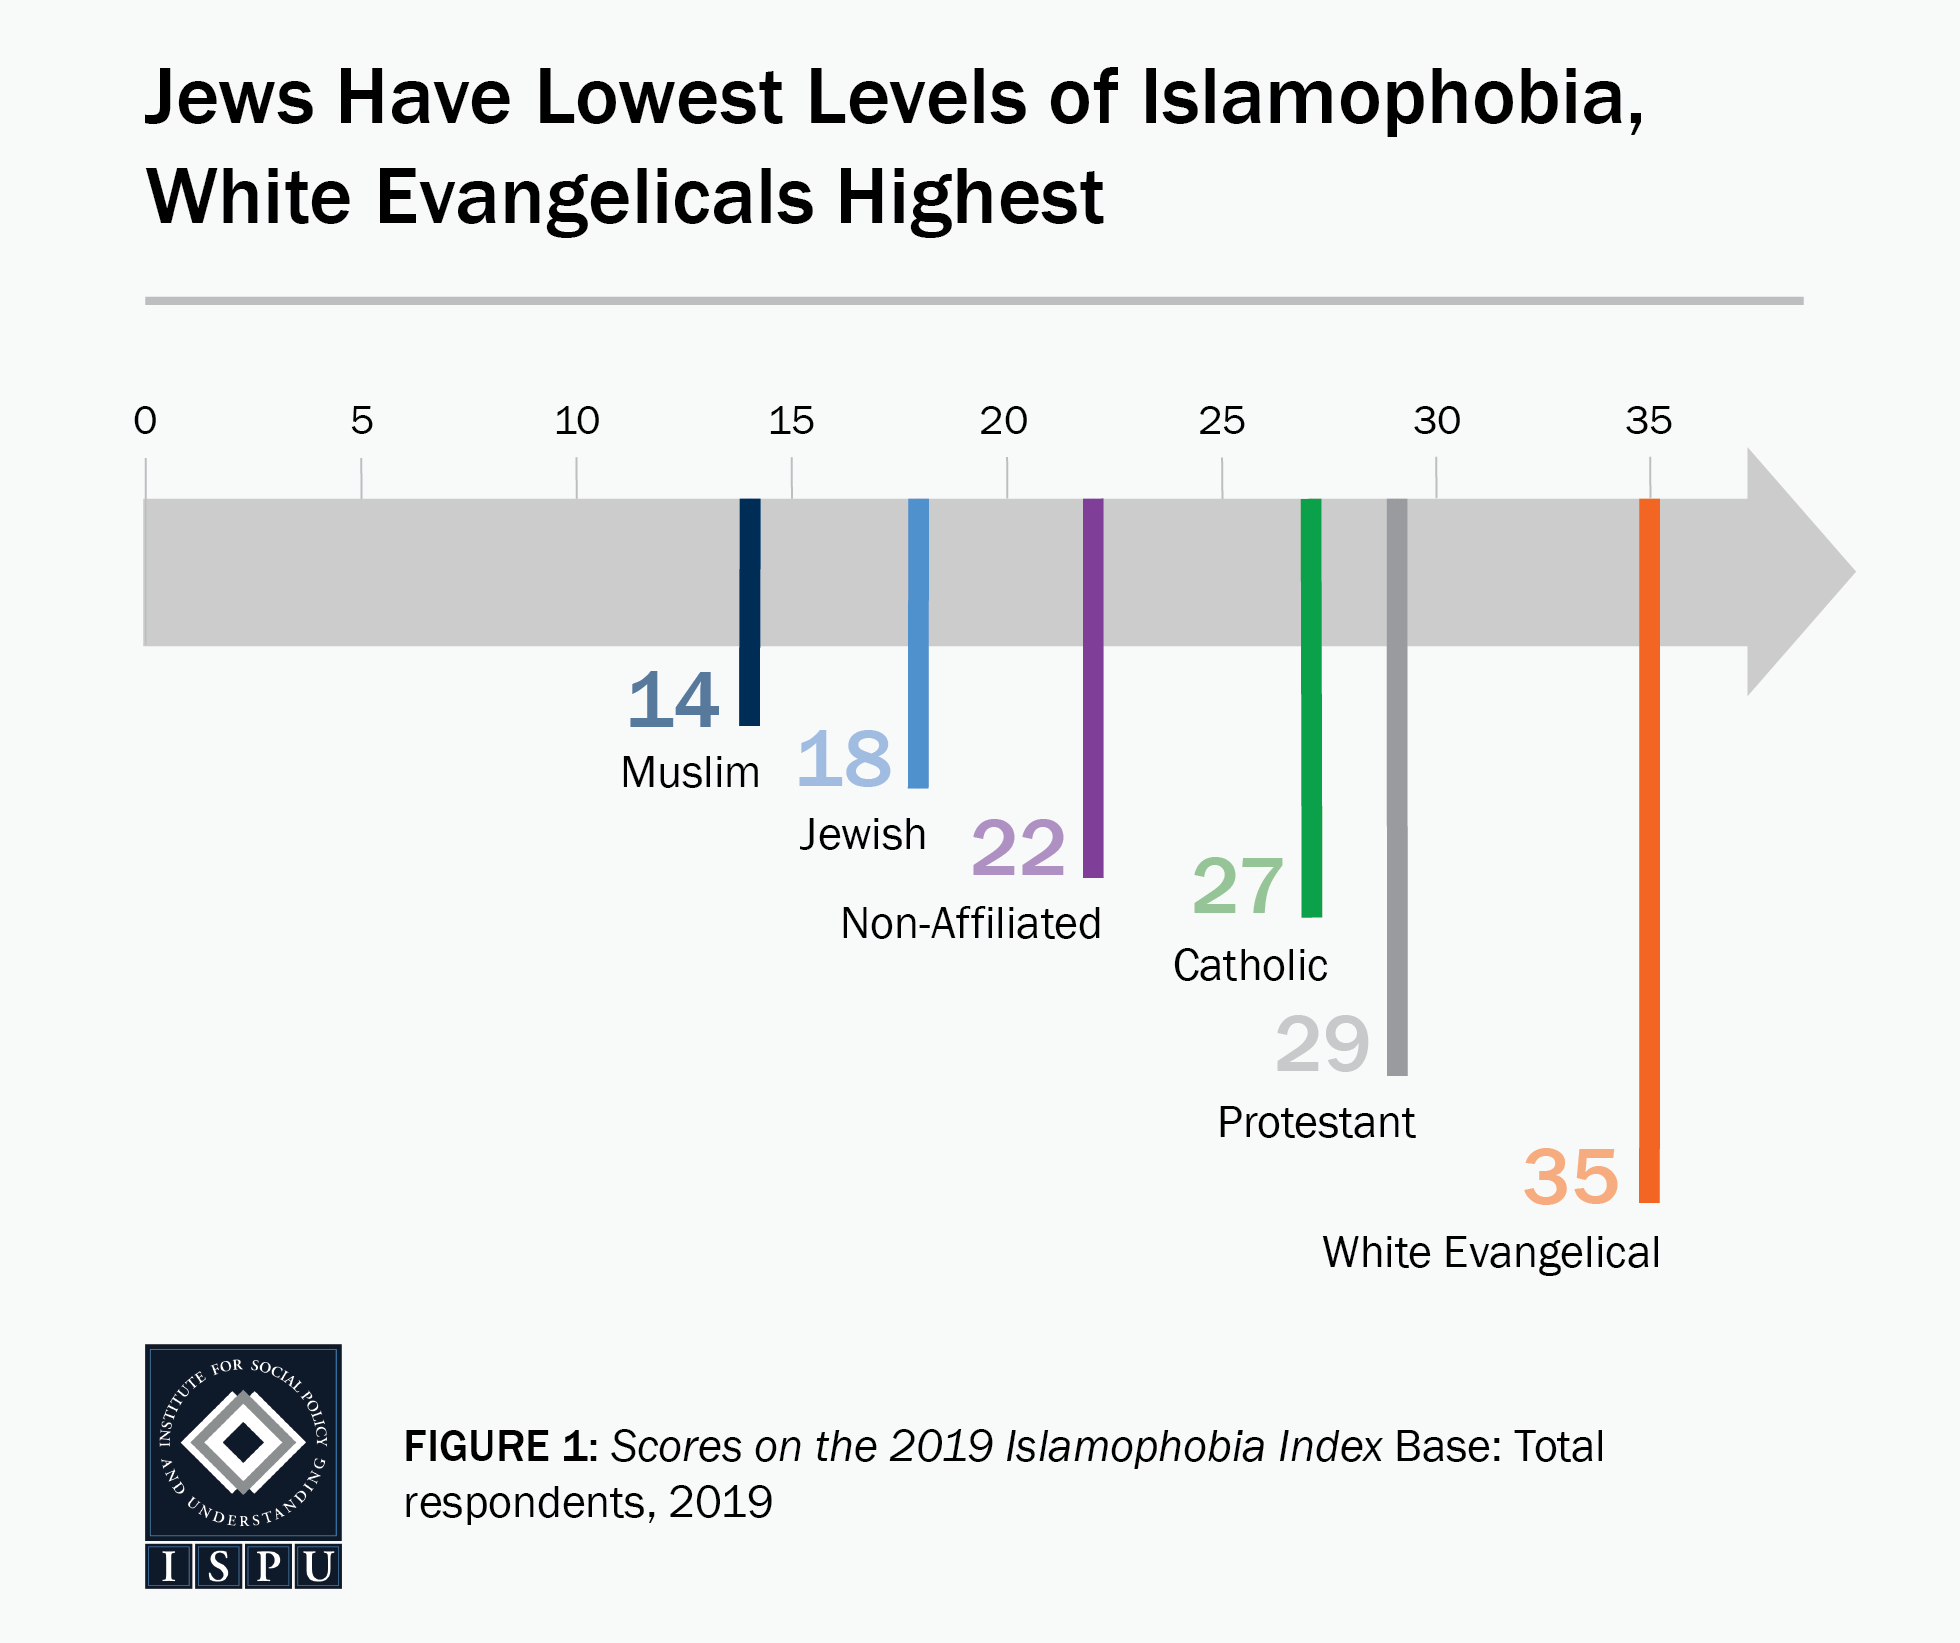 Figure 1: A graphic arrow showing where faith groups fall on the Islamophobia Index. Jews have the lowest levels of Islamophobia, white Evangelicals the highest